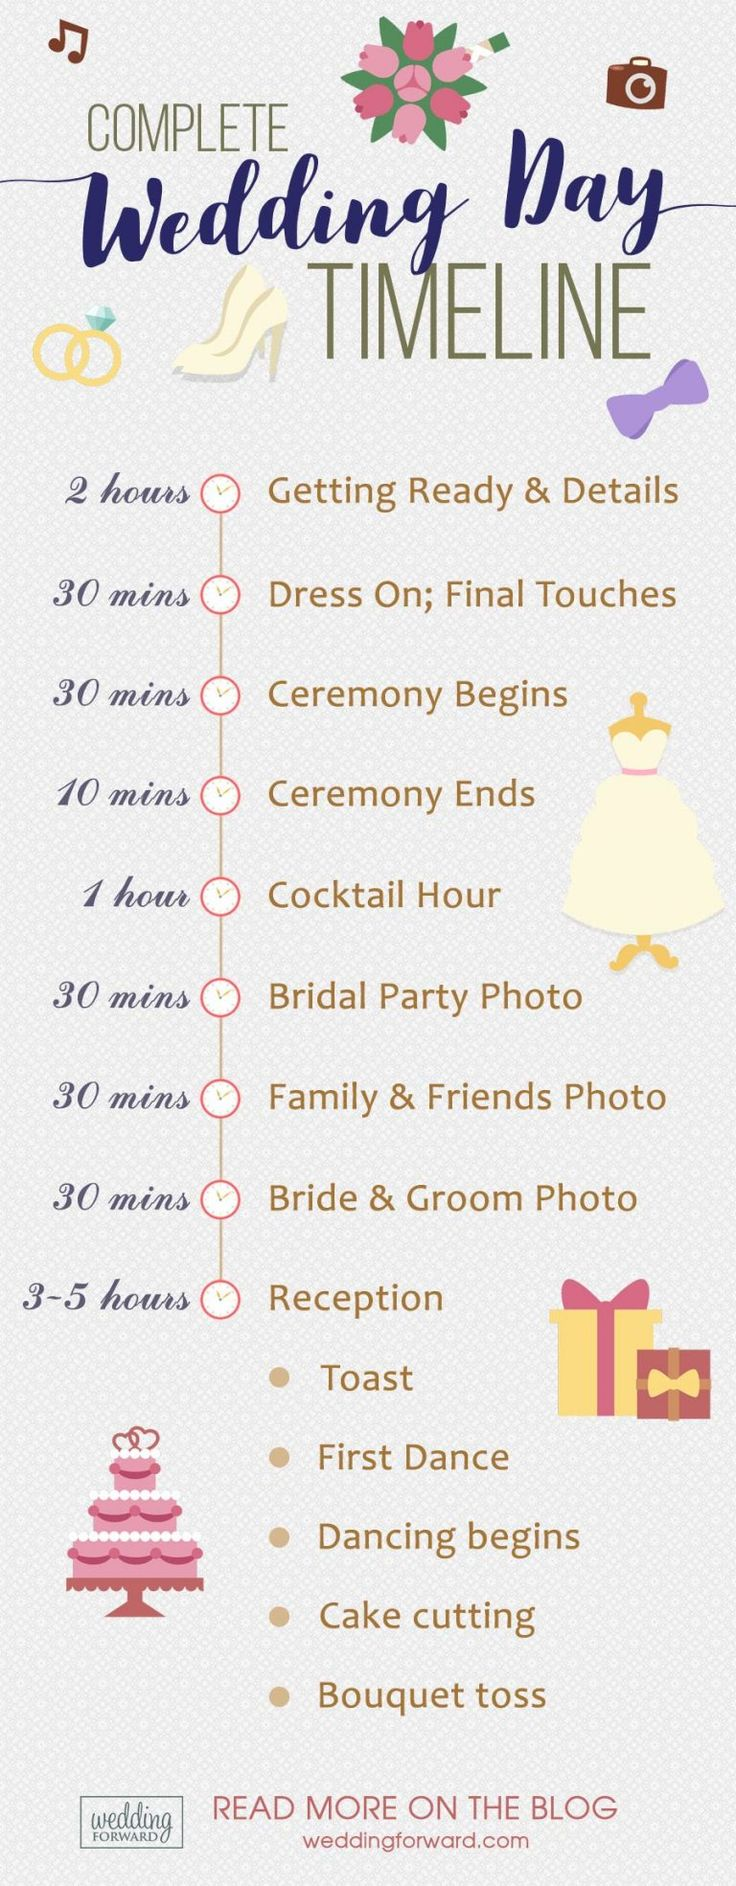 9 Expert Tips To Creating A Traditional Wedding Reception Timeline